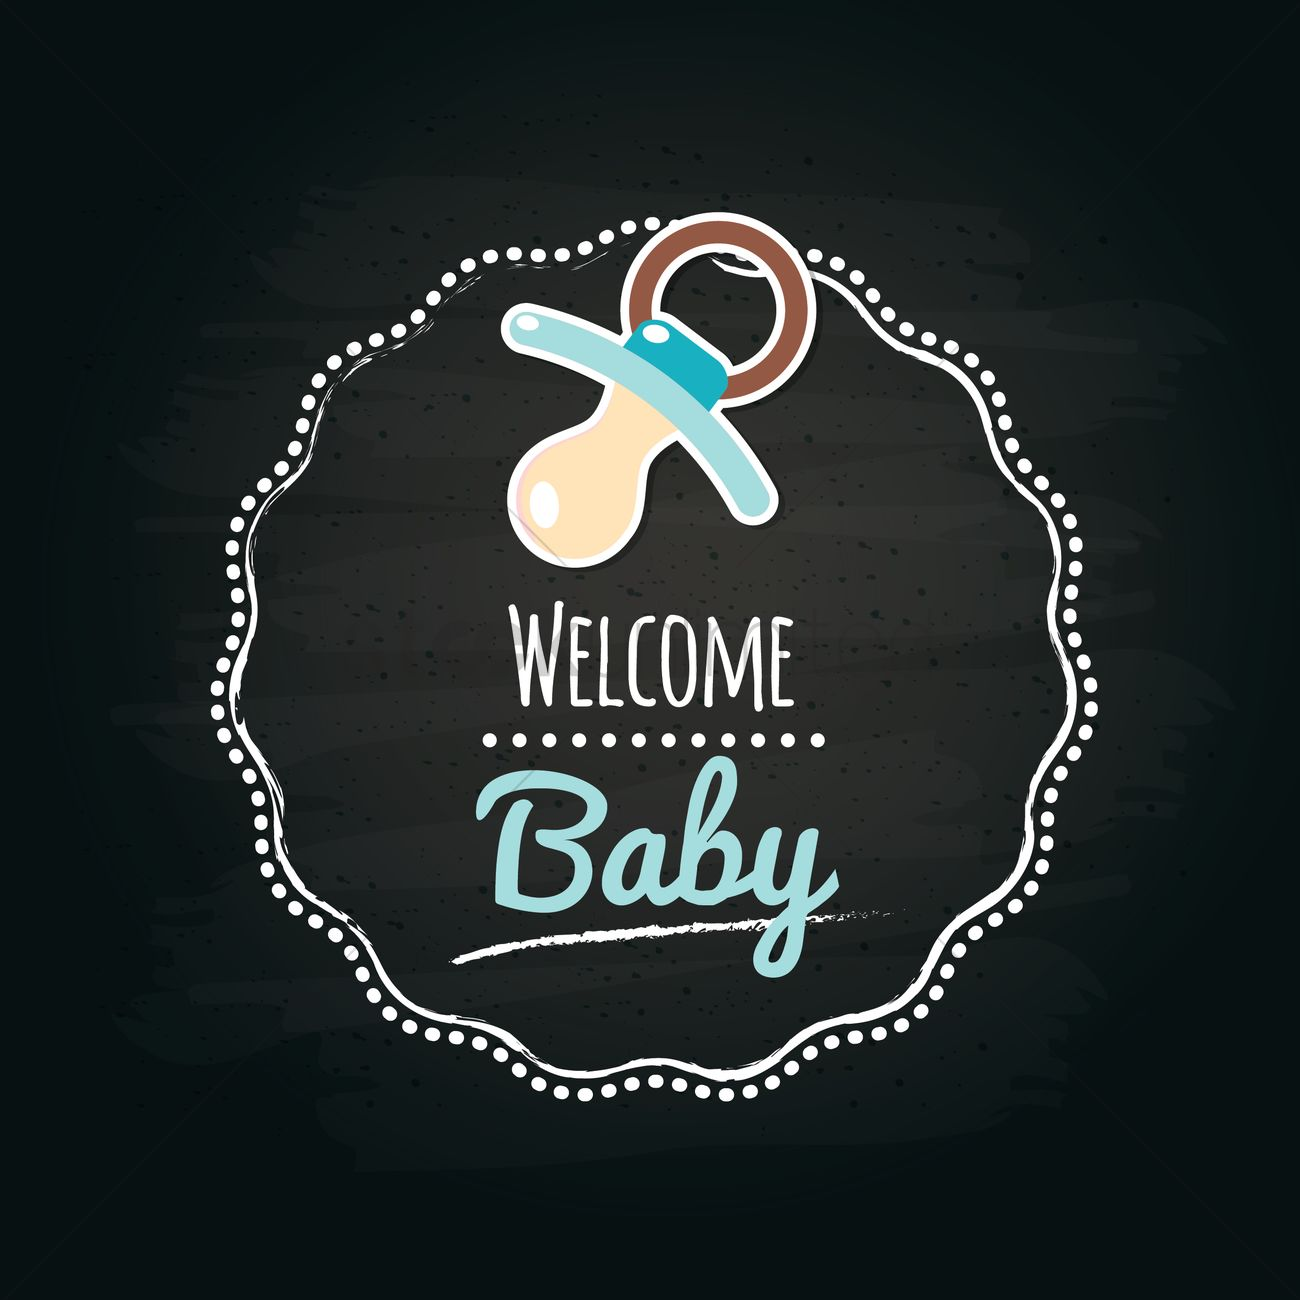 welcome baby label vector image 1617304 stockunlimited